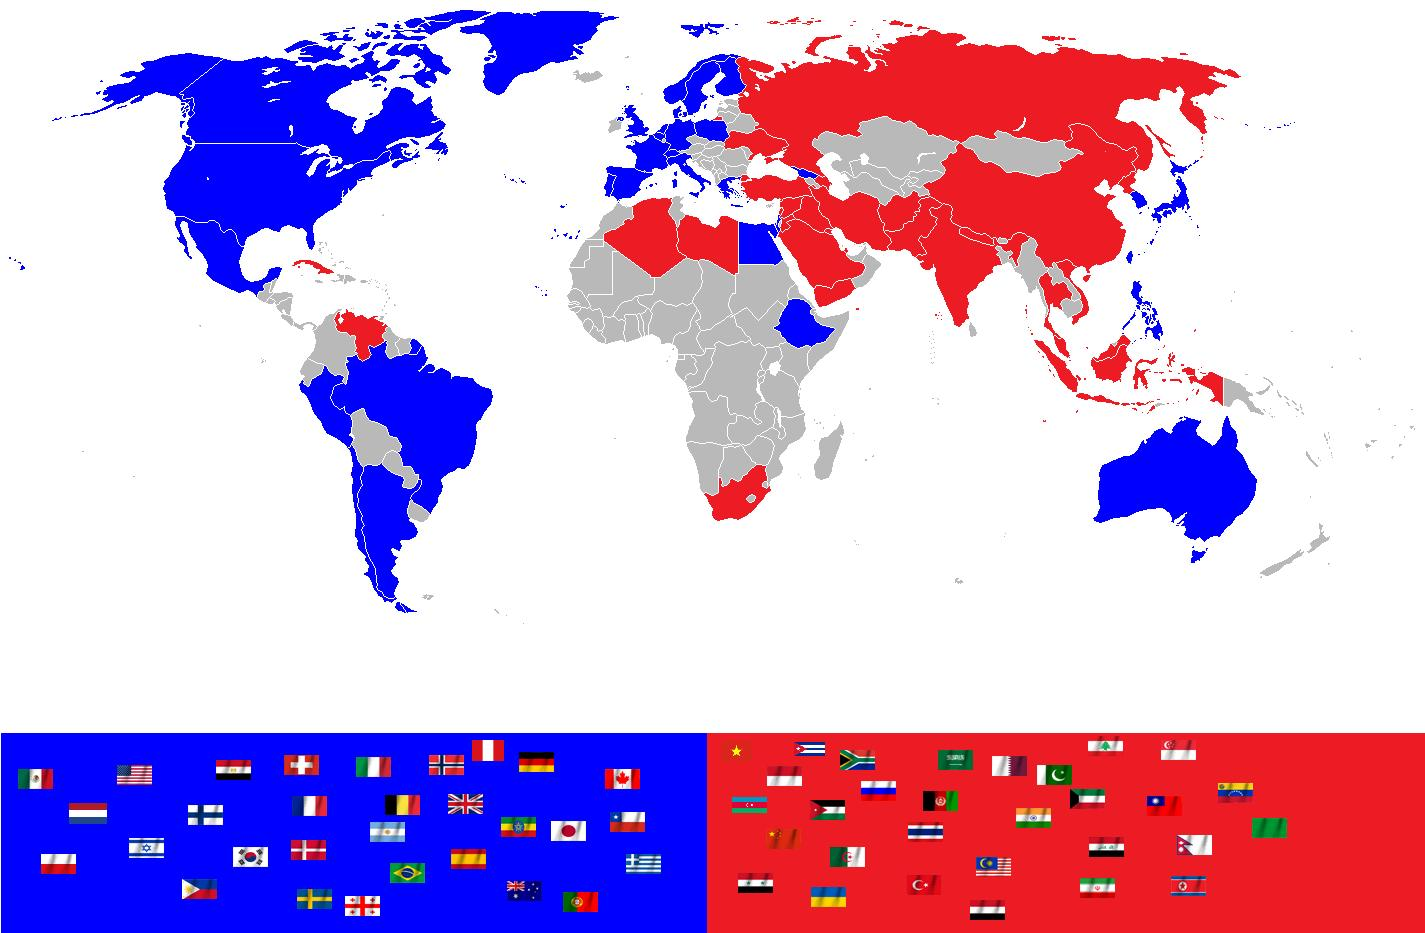 Map showing what sides countries are likely to take in world war 3